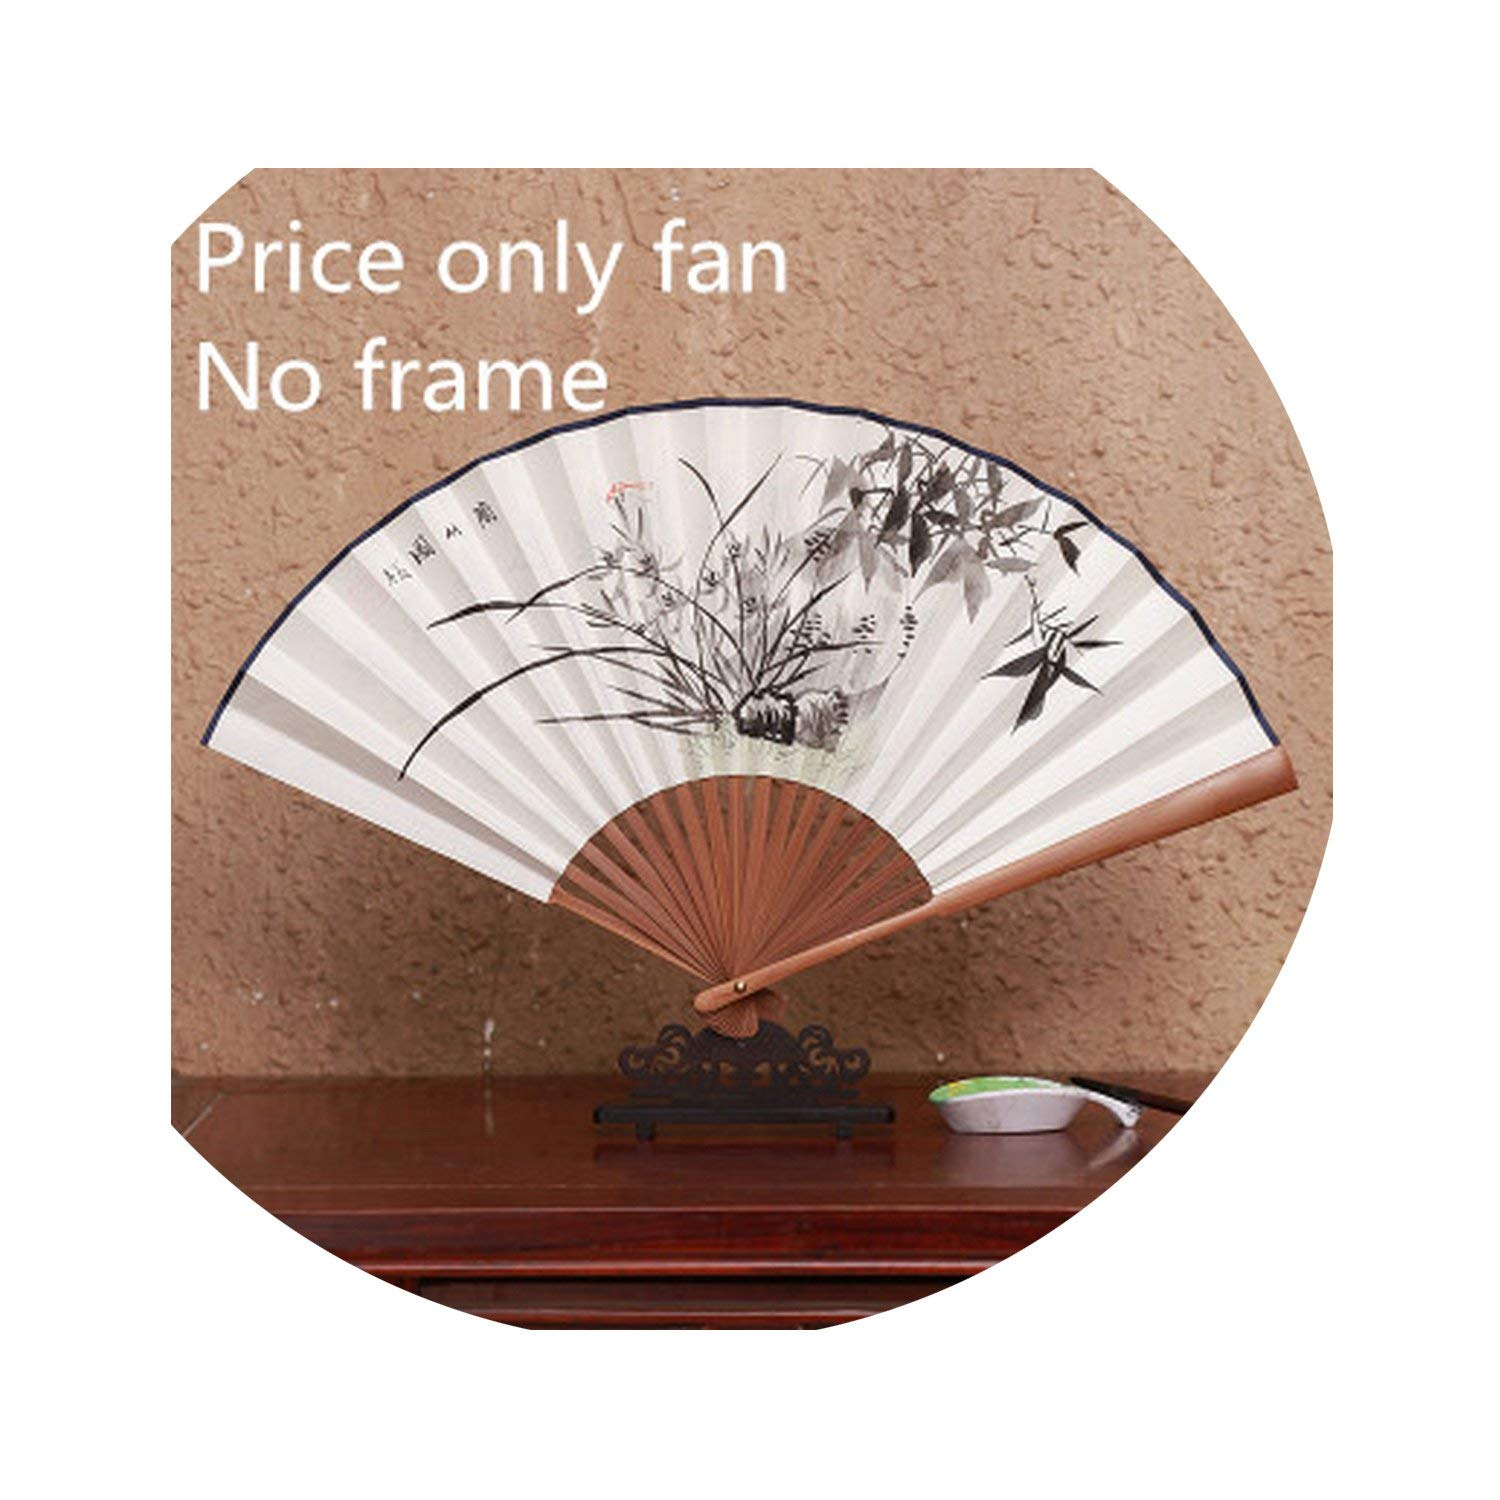 Tiwcer Hand Painted White Hand Fans Chinese Folding Fan Painting Rice Paper Hand Fan Wedding Decoration Gift 8'',Orchid Bamboo,8 Inches